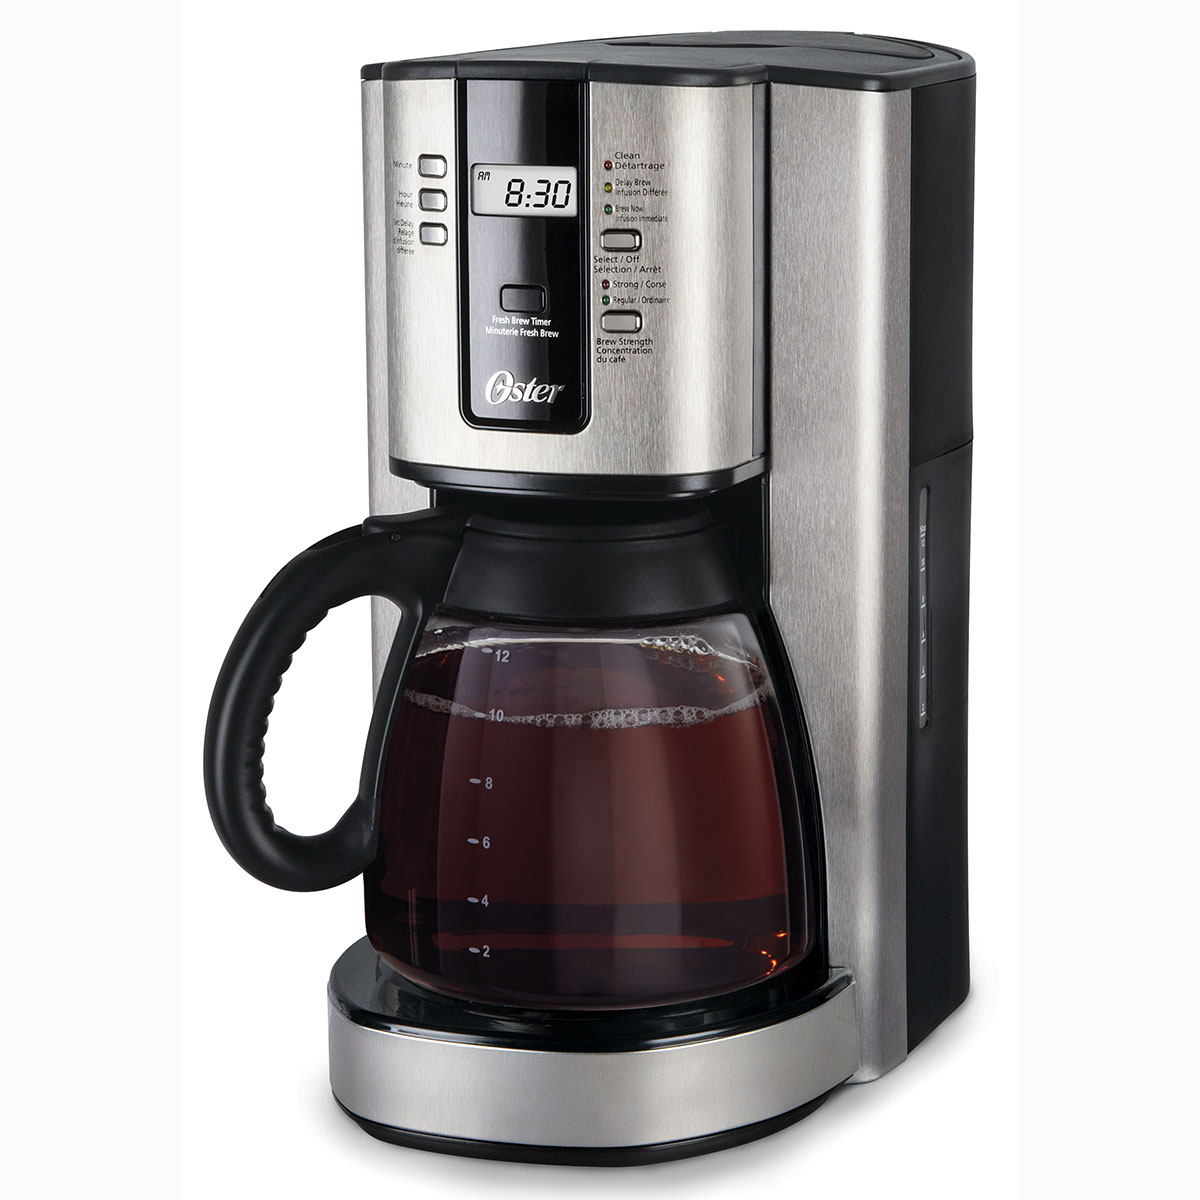 Oster 12 cup programmable coffee maker bvsttjx37 033 Coffee maker brands